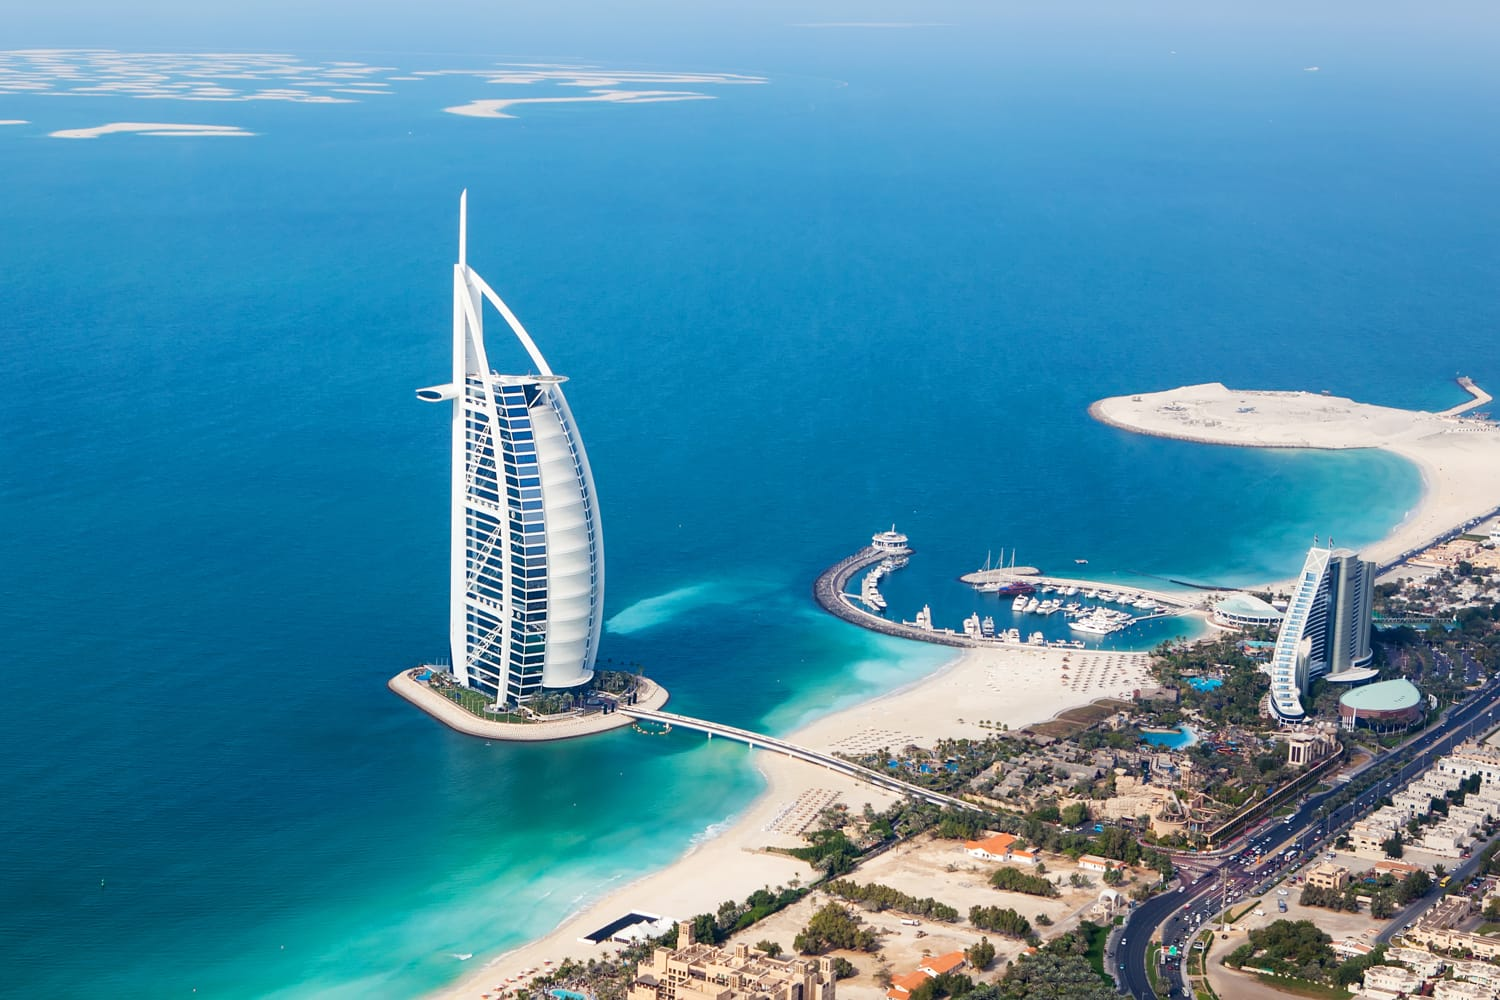 Burj Al Arab hotel in Dubai, UAE.